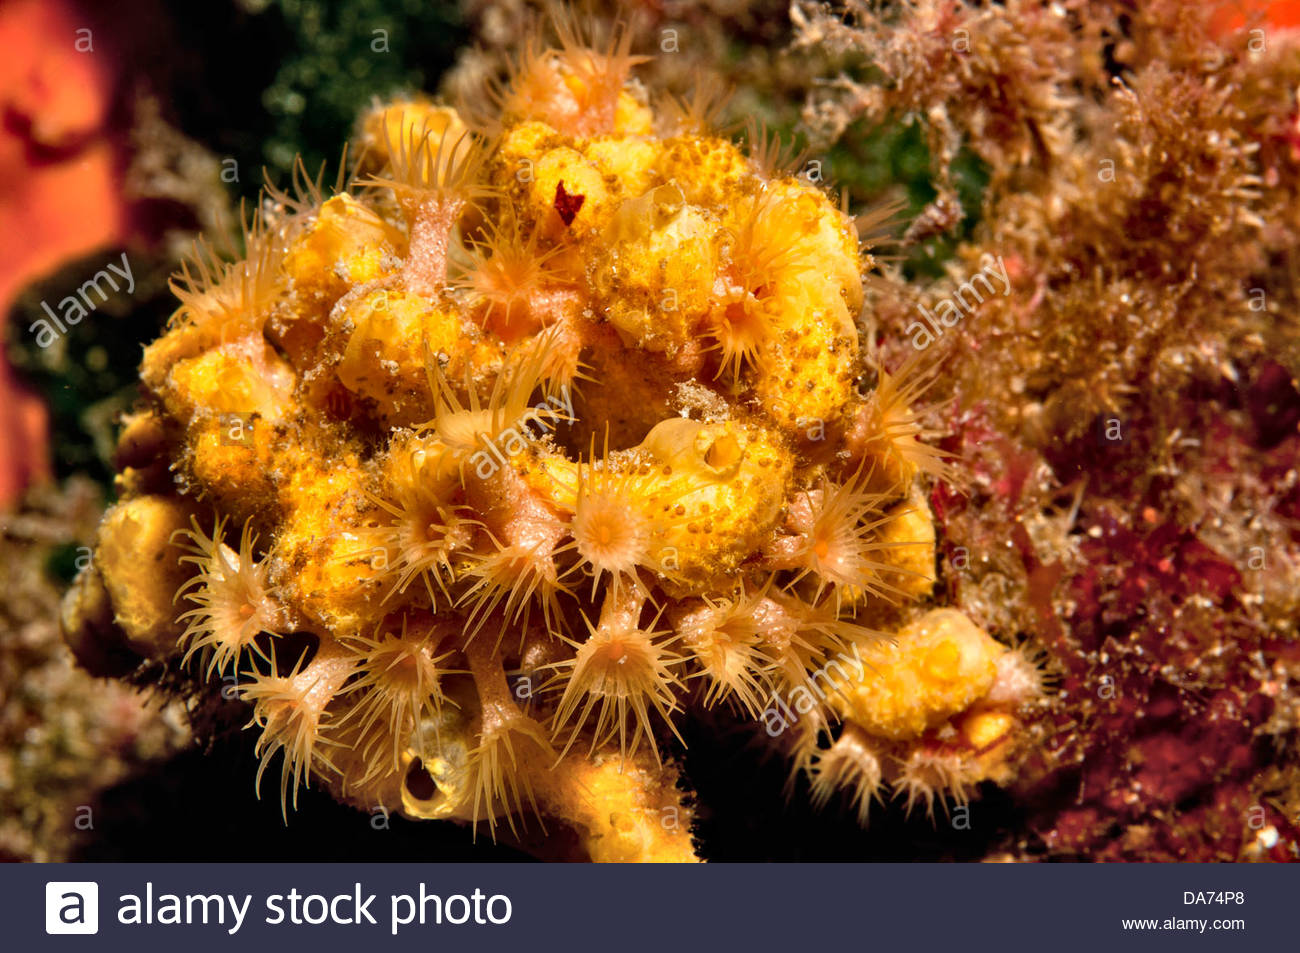 Axinella polypoides immagini axinella polypoides fotos stock alamy le margherite di mare su axinella polypoides spugna immagini stock altavistaventures Image collections